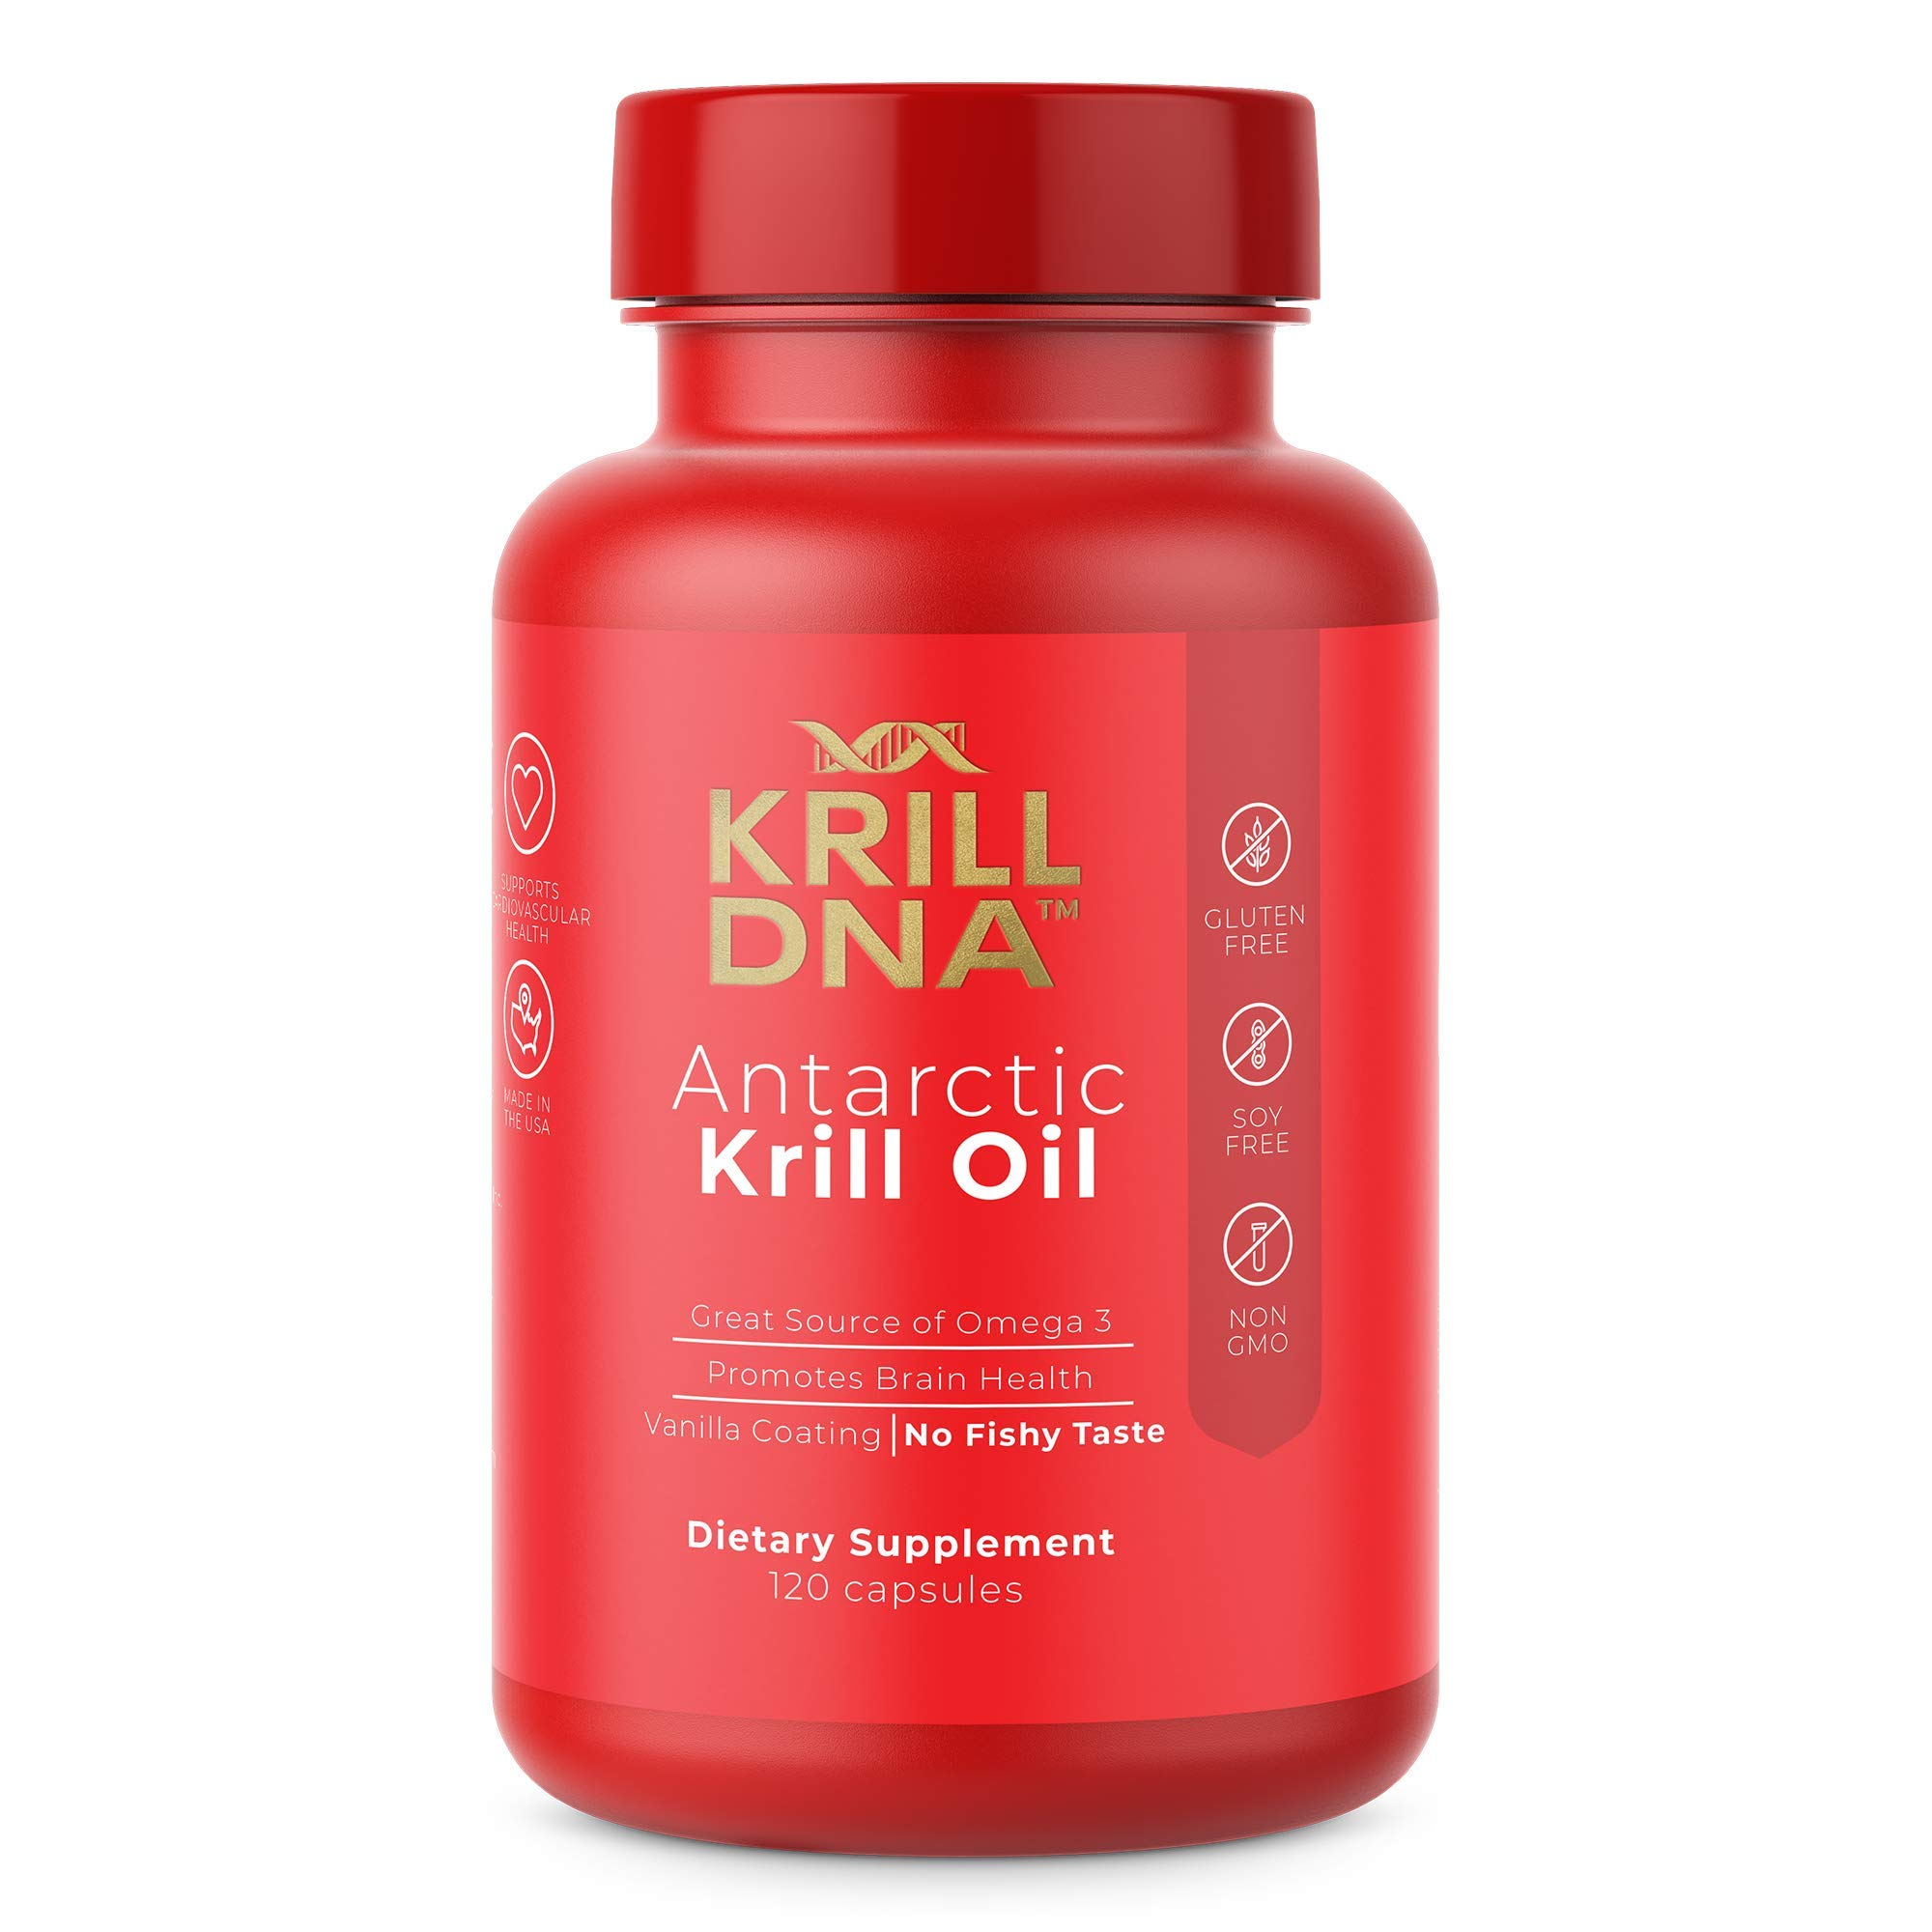 Antarctic Krill Oil by KrillDNA | 1000 mg/Serving. with Astaxanthin, Omega 3, DHA, EPA, and Phospholipids. 120 Softgels. Vanilla Coating, No Smell, No Fishy Taste | (60 Servings) by MATCHA DNA